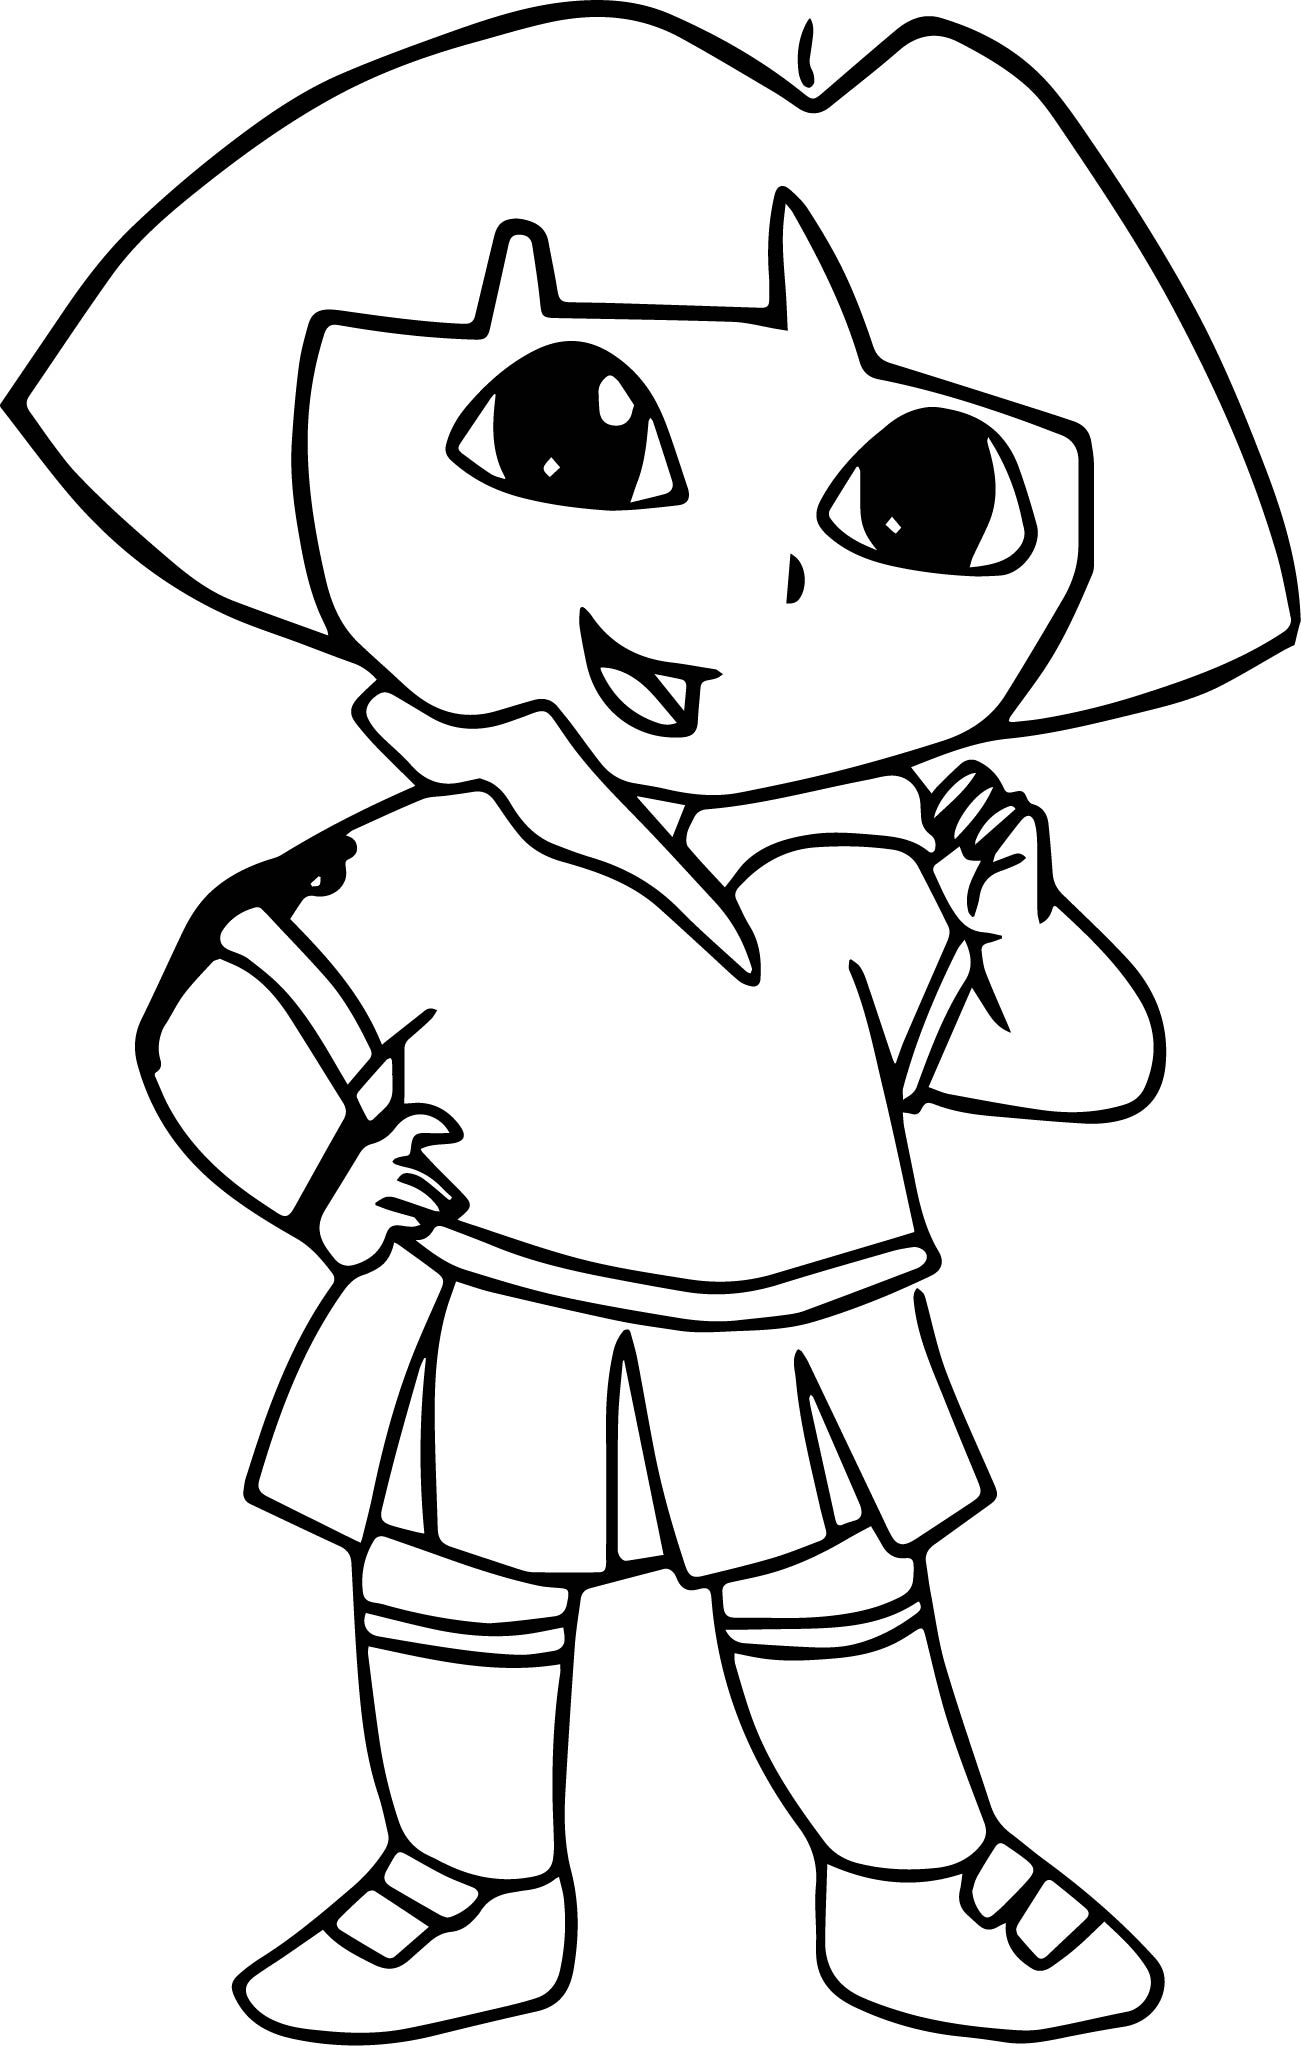 dora sketch for coloring dora drawing pictures at getdrawings free download dora for coloring sketch